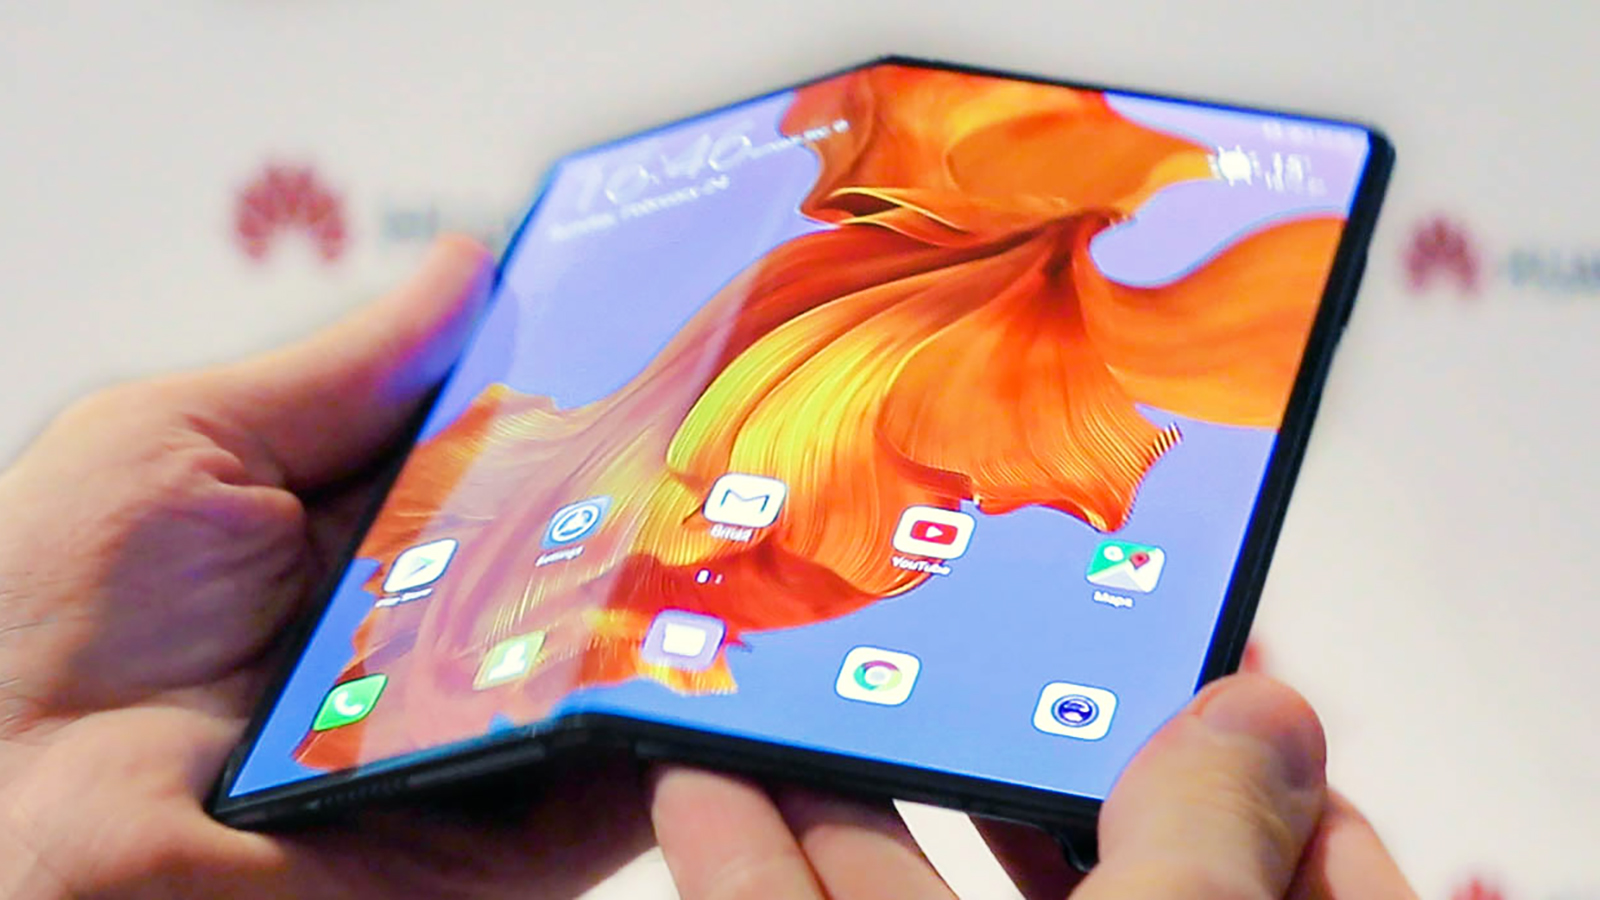 Huawei proceeds to prods its forthcoming Mate X2 foldable phone